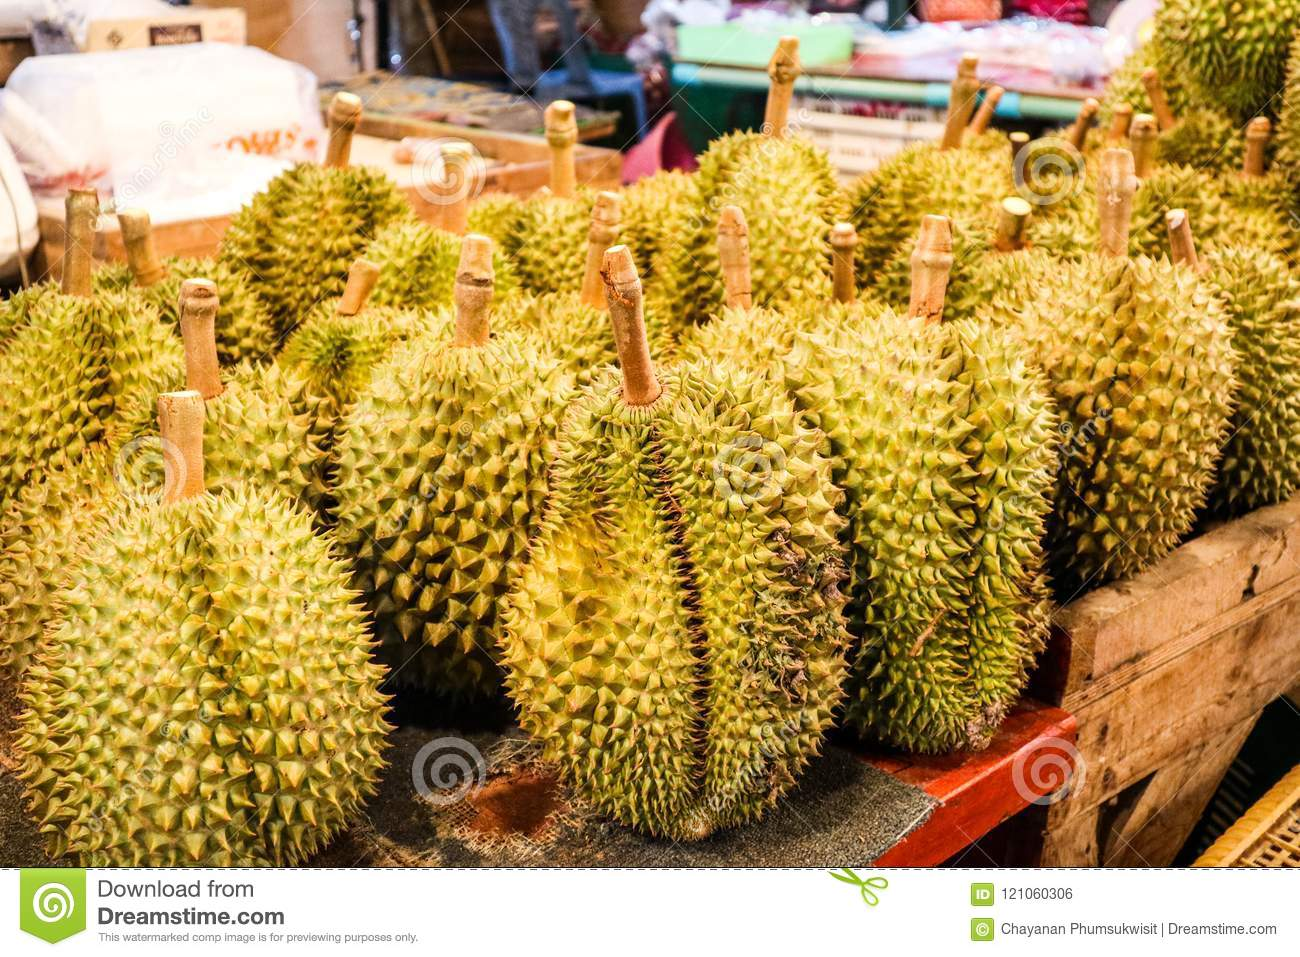 The durian is the fruit of several tree